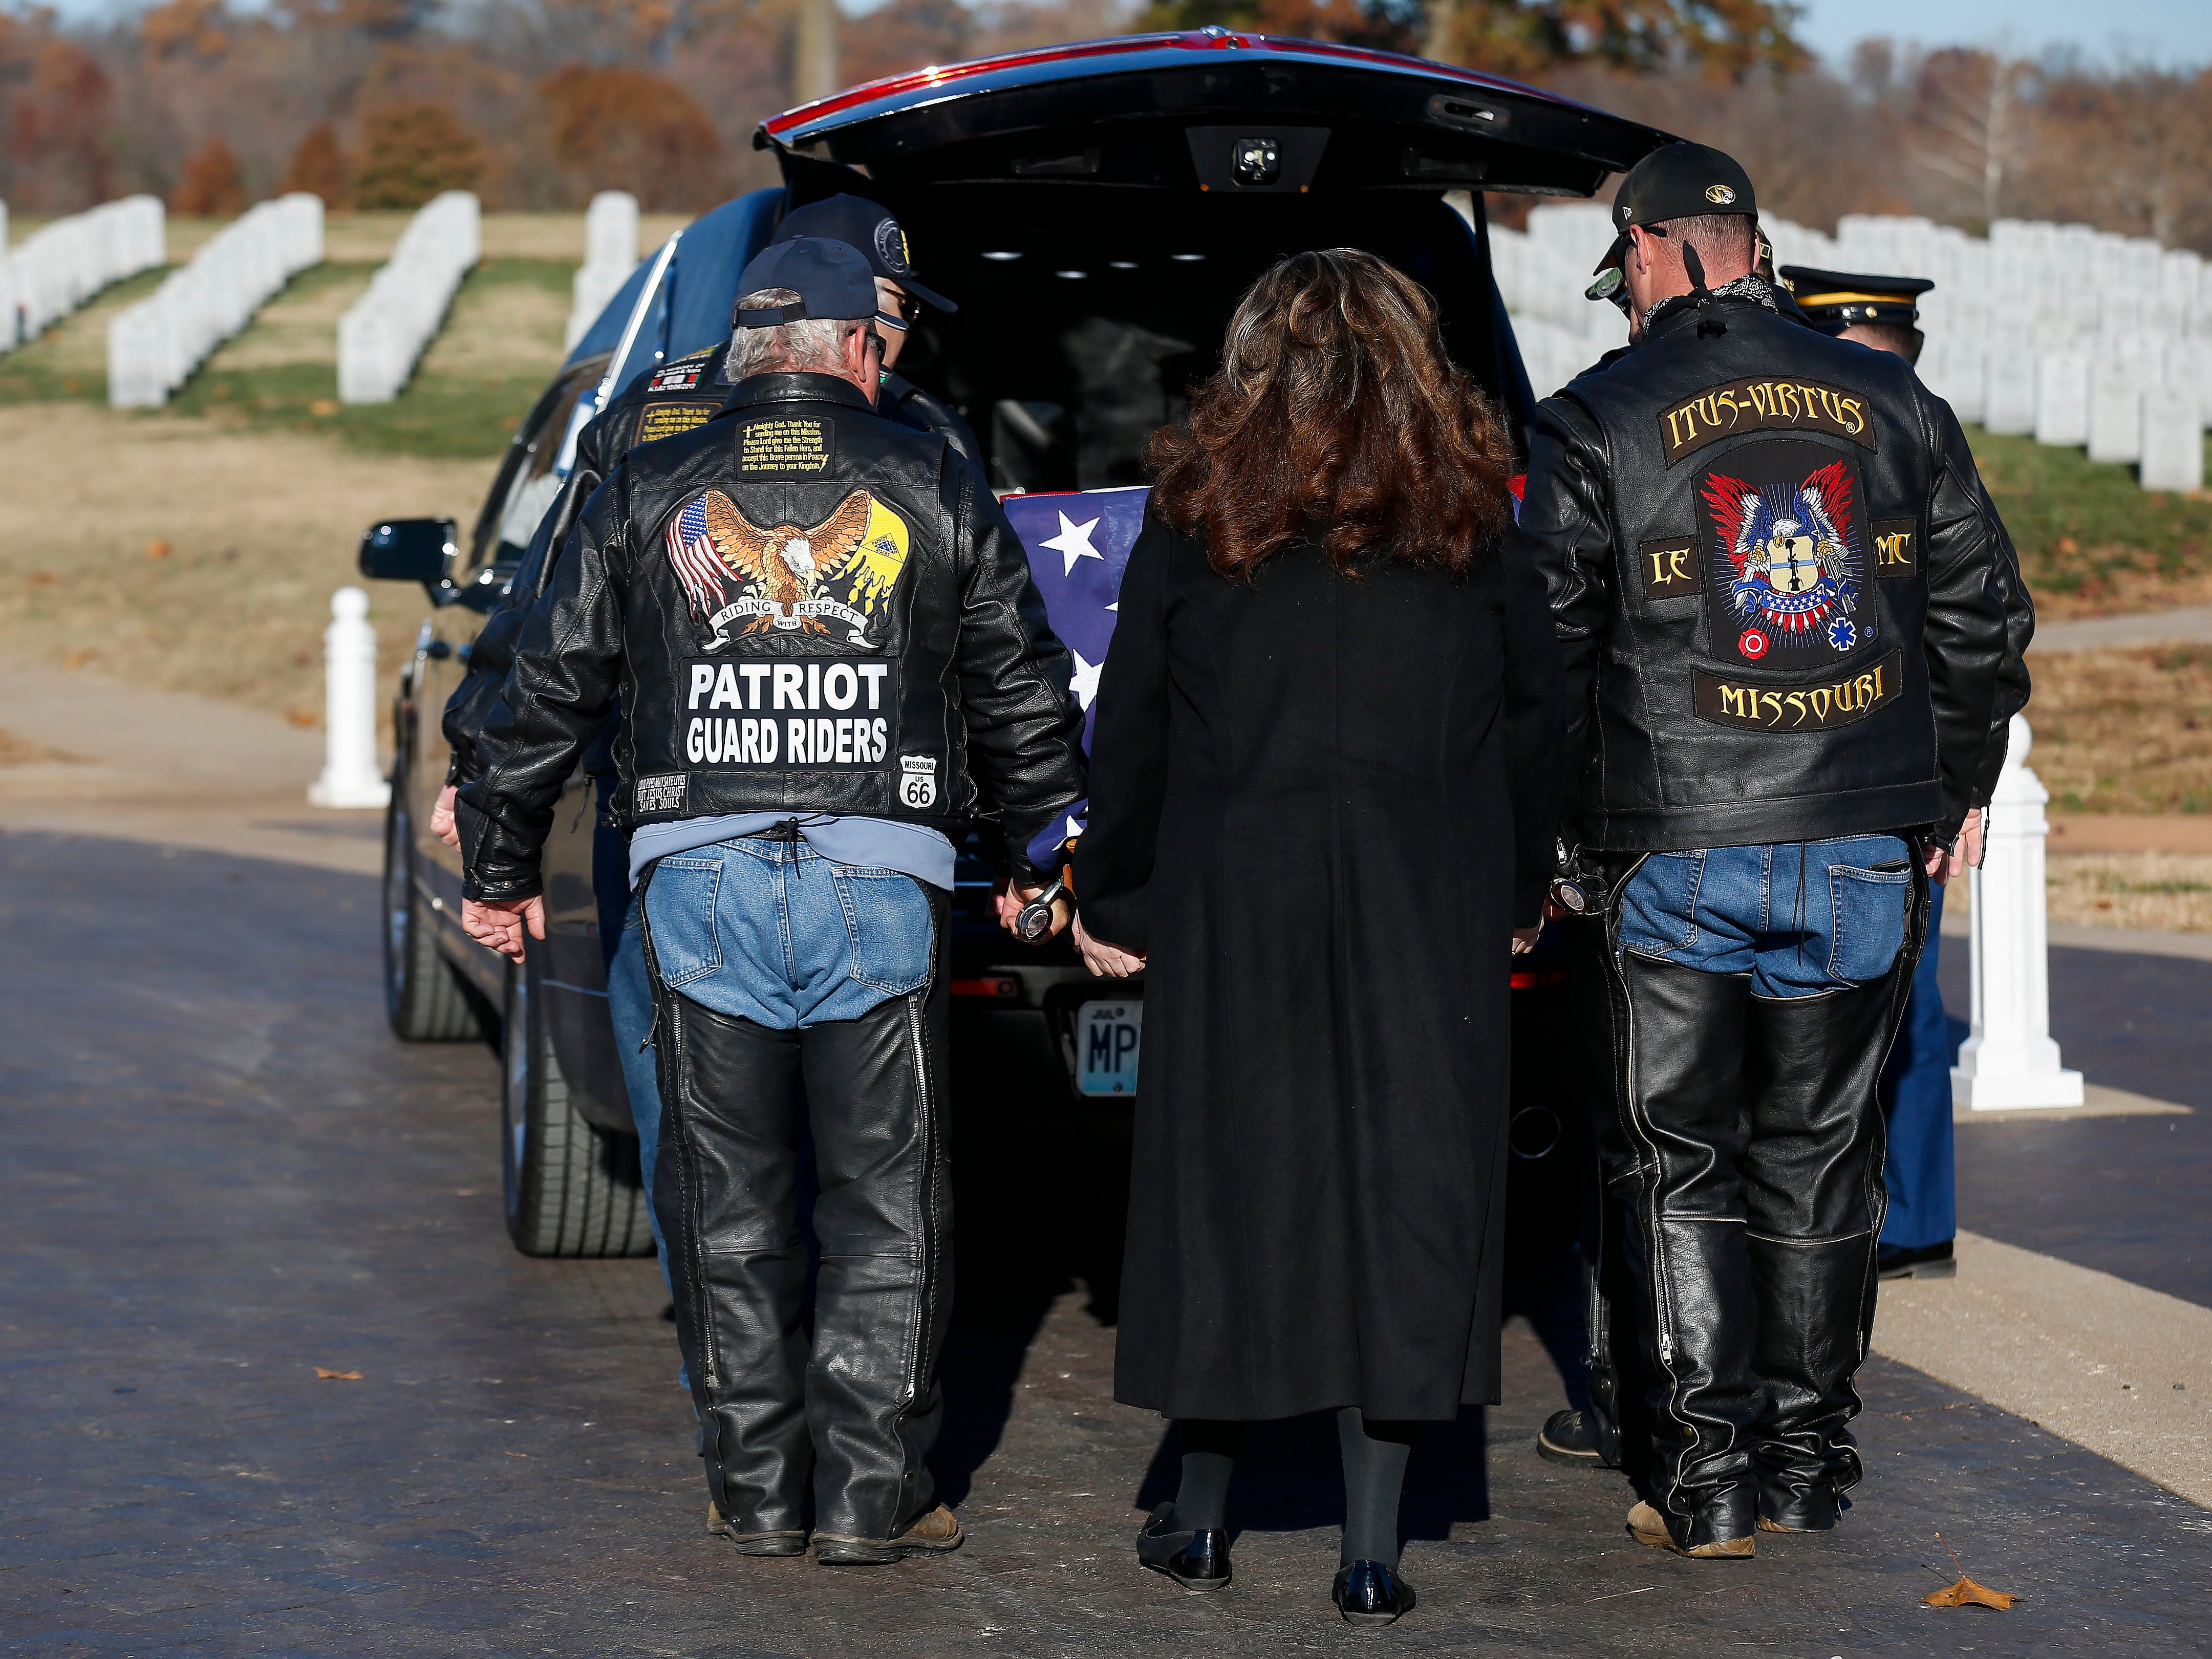 Members of the Patriot Guard Riders serve as pallbearers during the funeral of Army veteran Michael Hiers at the Missouri Veterans Cemetery on Friday, Nov. 16, 2018.